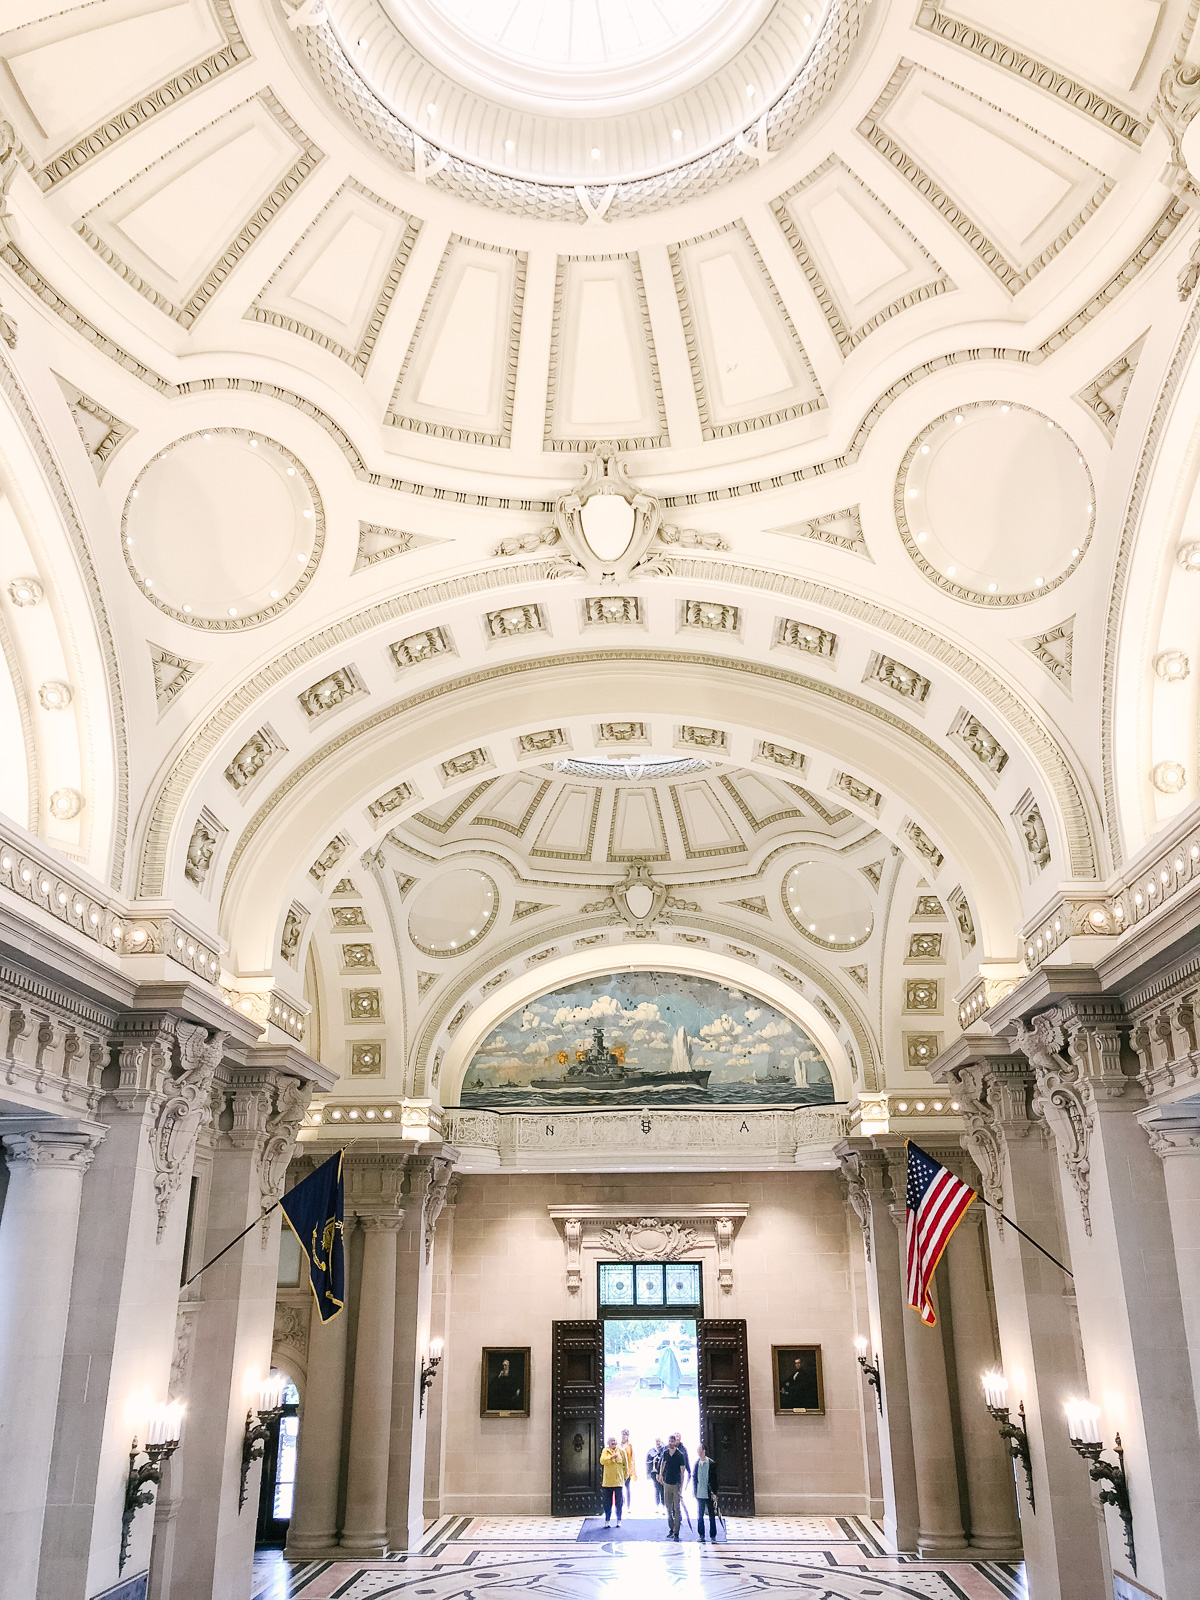 USNA tour Bancroft Hall | Don't miss the full Annapolis Weekend Guide: where to eat, what to do, and where to stay! | bylaurenm.com